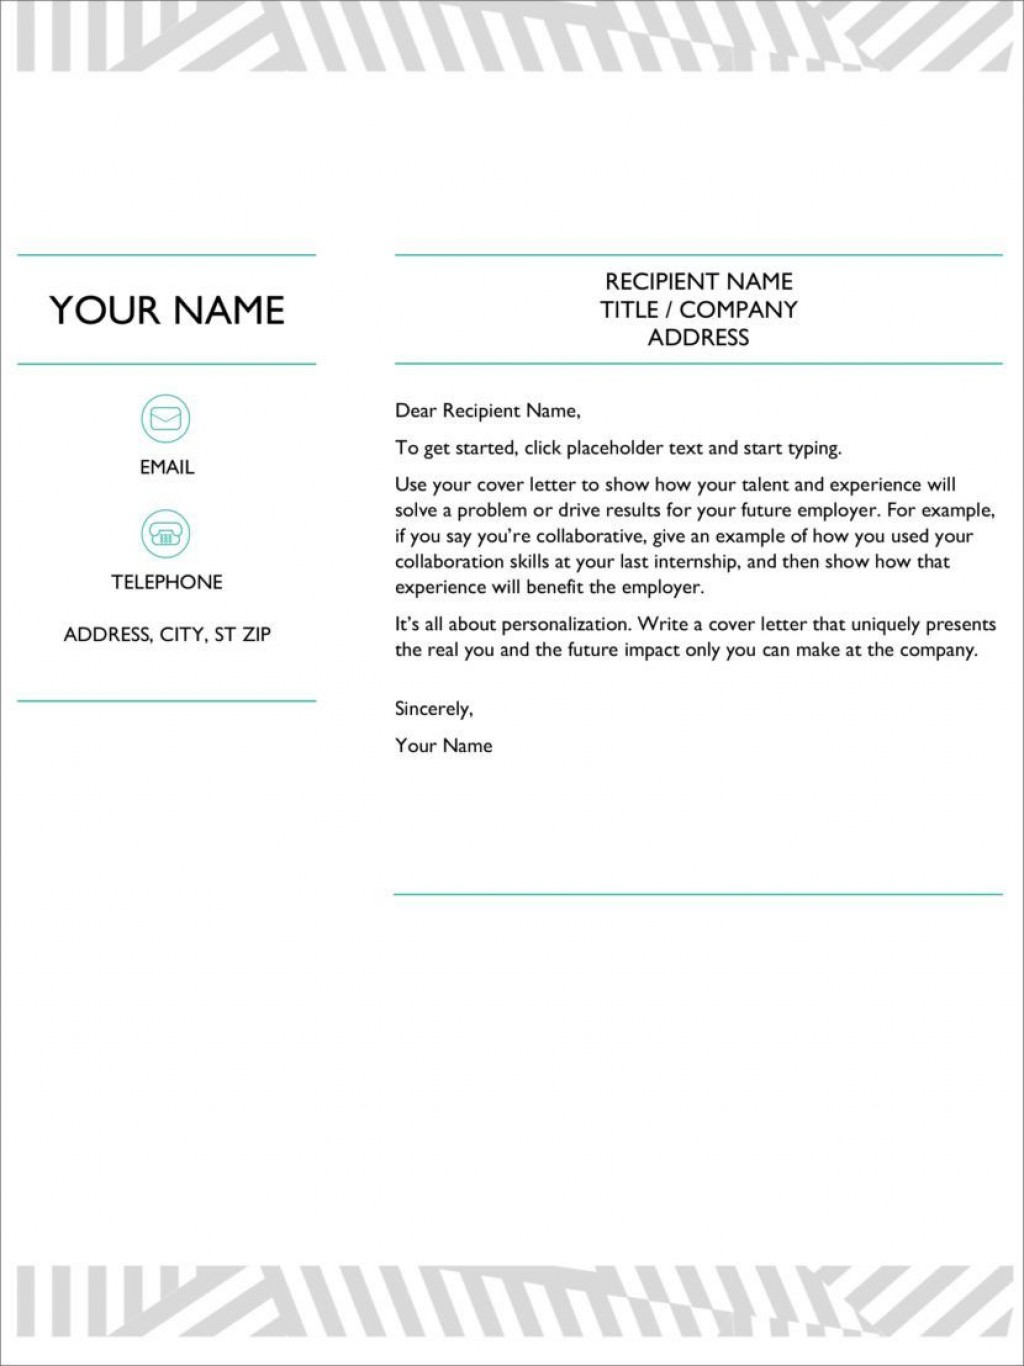 005 Outstanding Download Cover Letter Template In Microsoft Word Image  Free Creative ResumeLarge